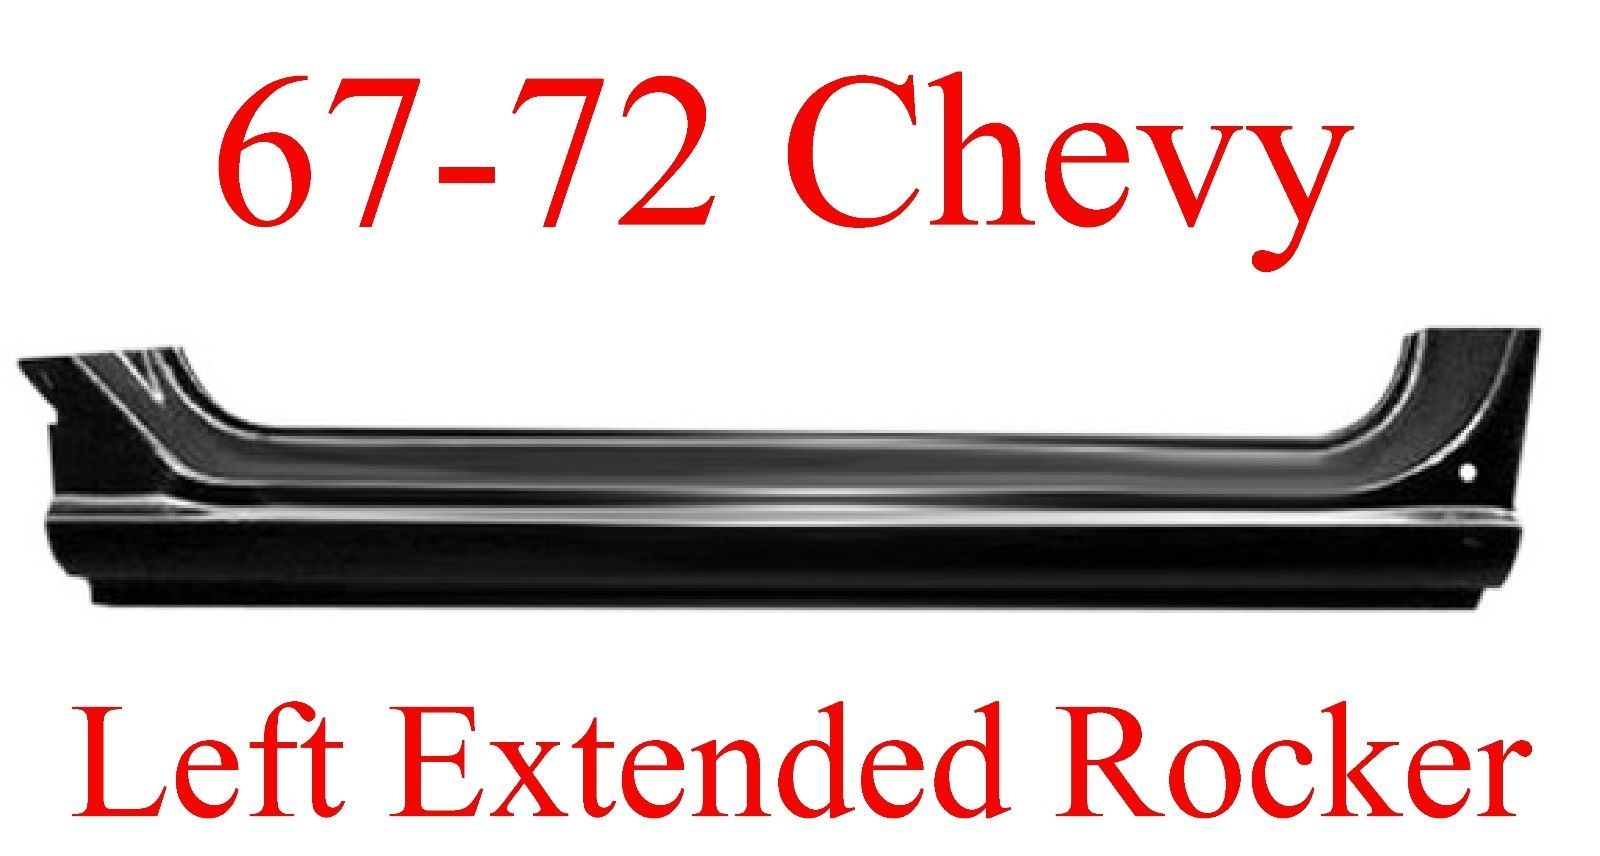 67 72 Chevy GMC LEFT Extended Rocker Panel